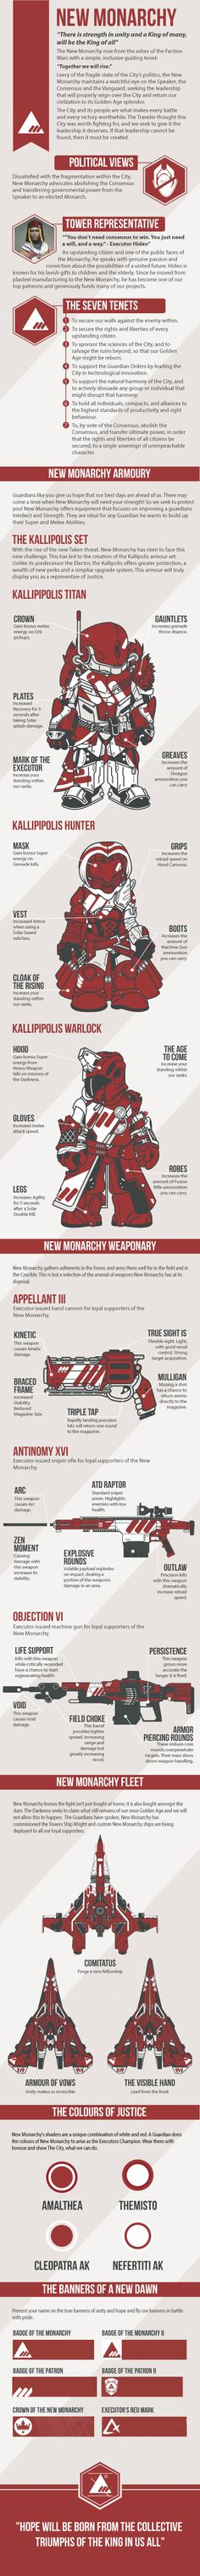 So your thinking of joining New Monarchy